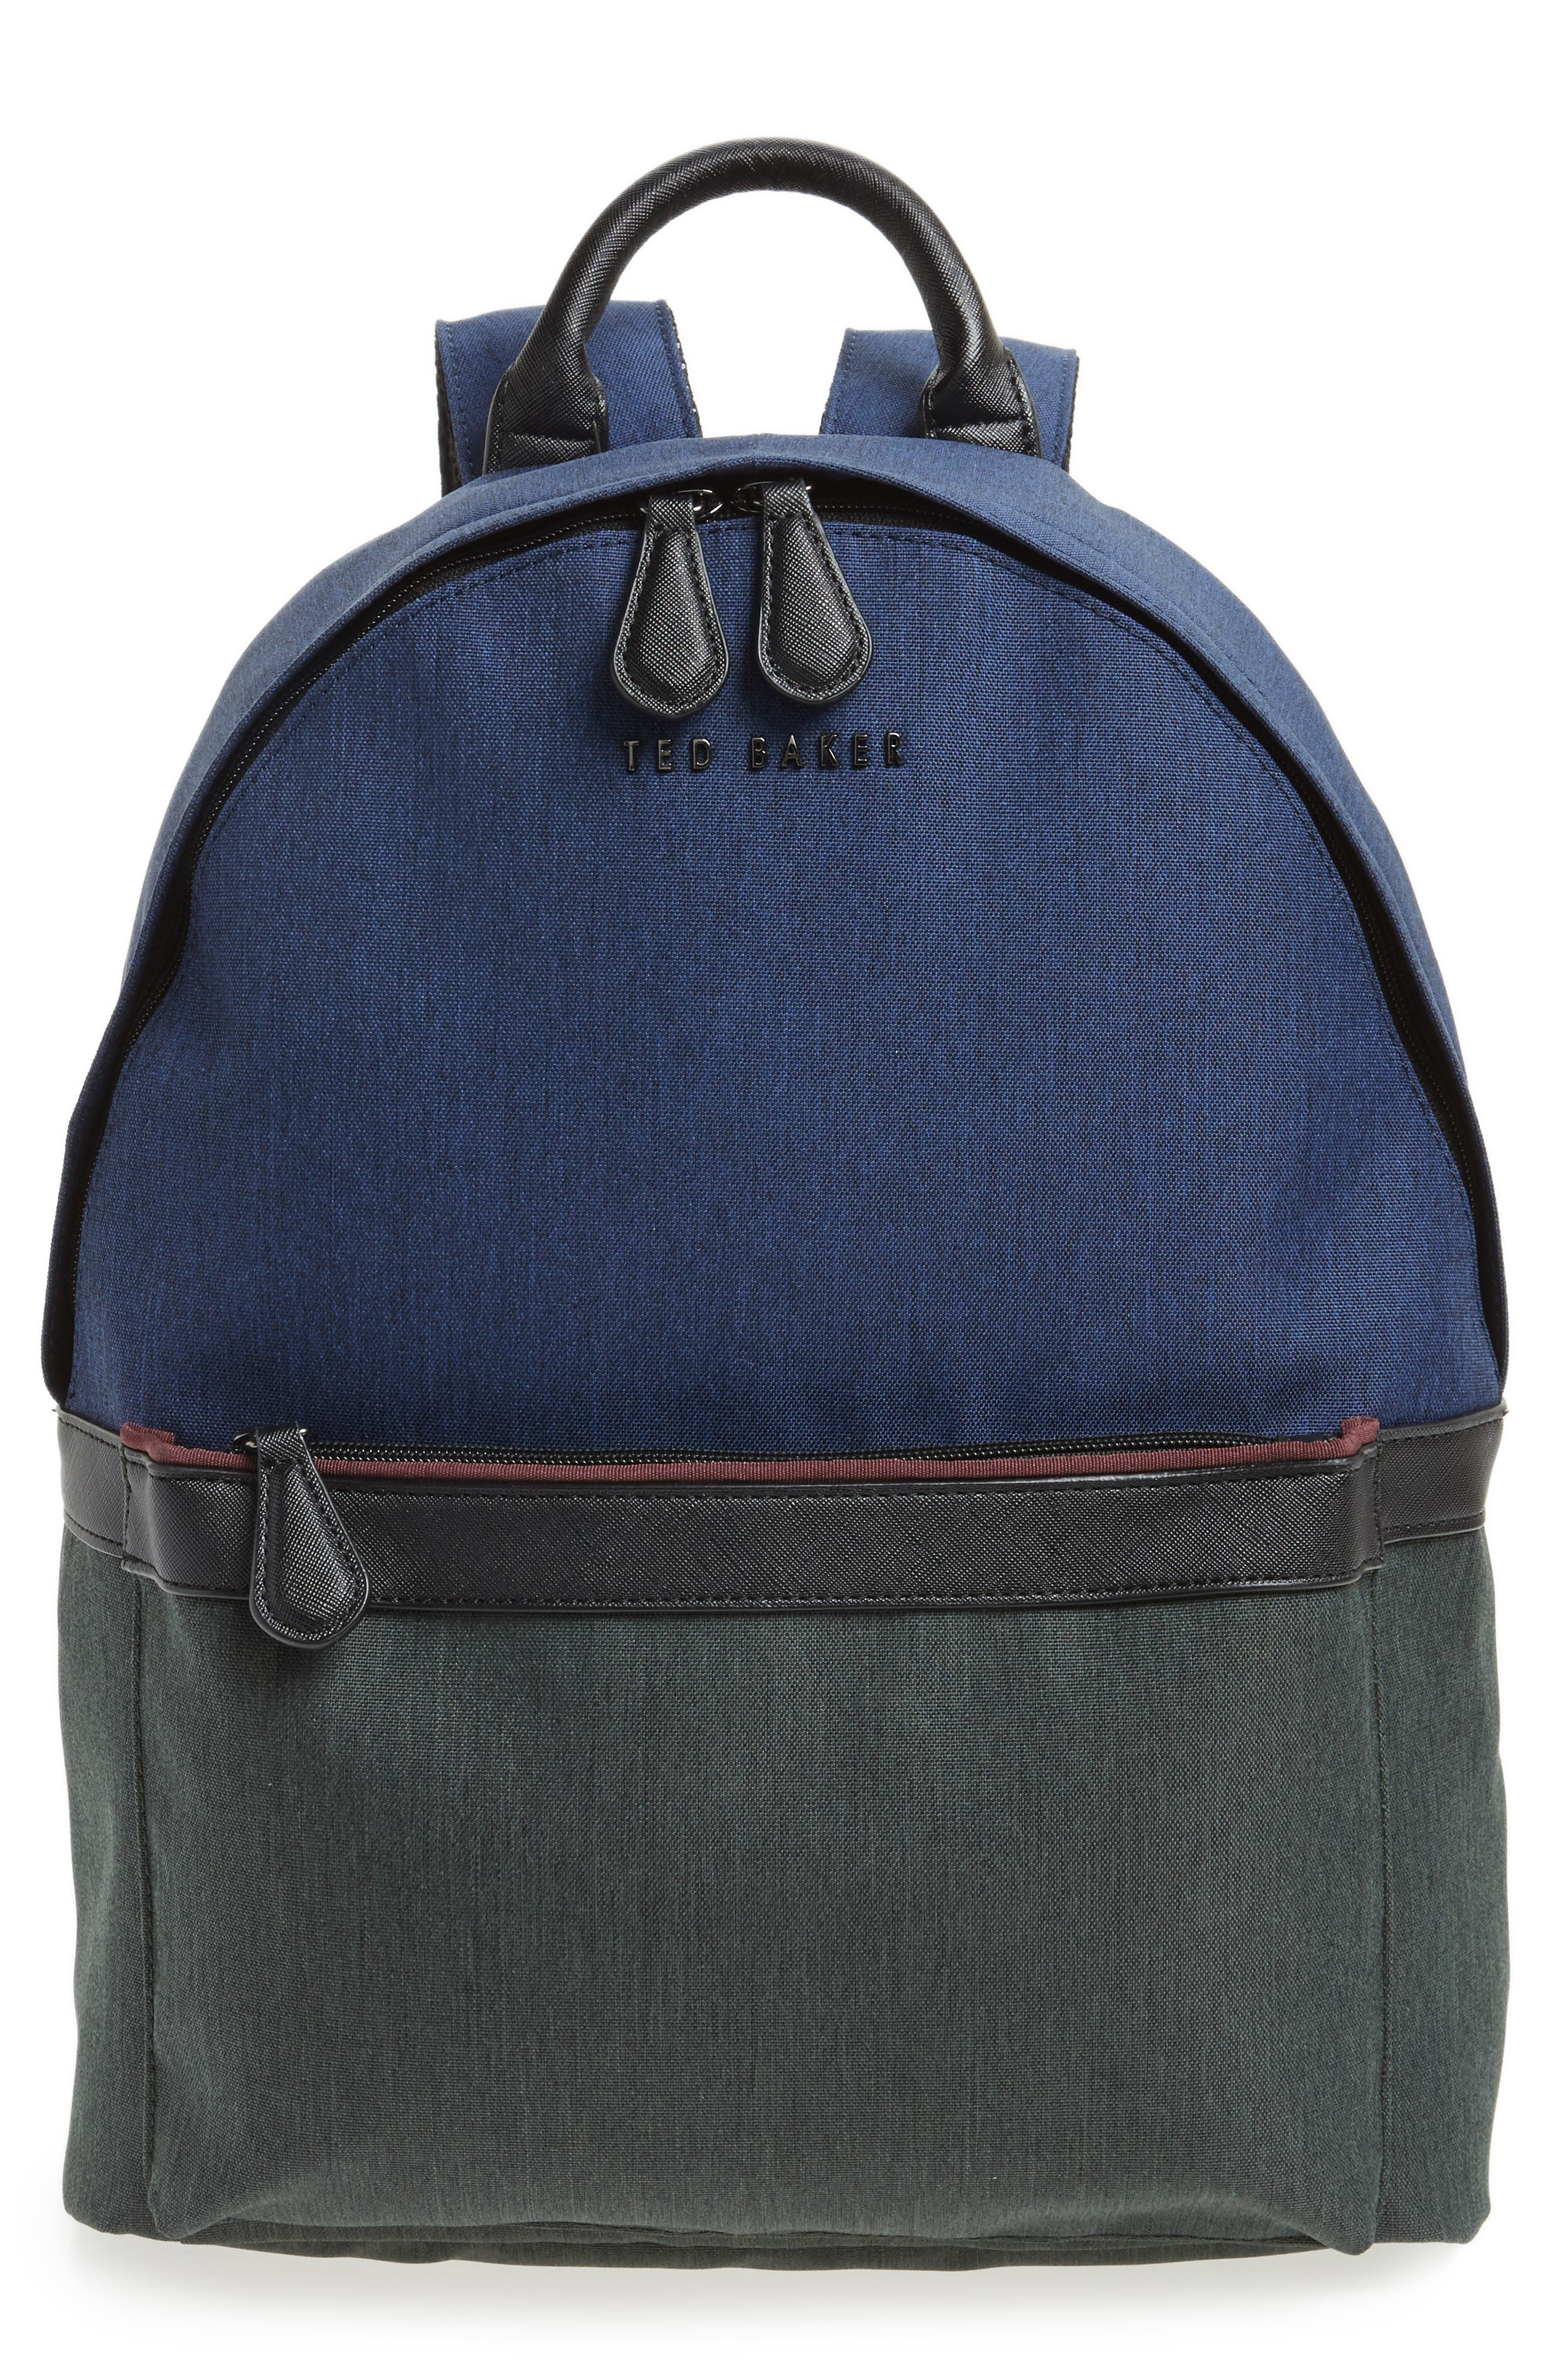 Zirabi Backpack,                             Main thumbnail 1, color,                             Blue